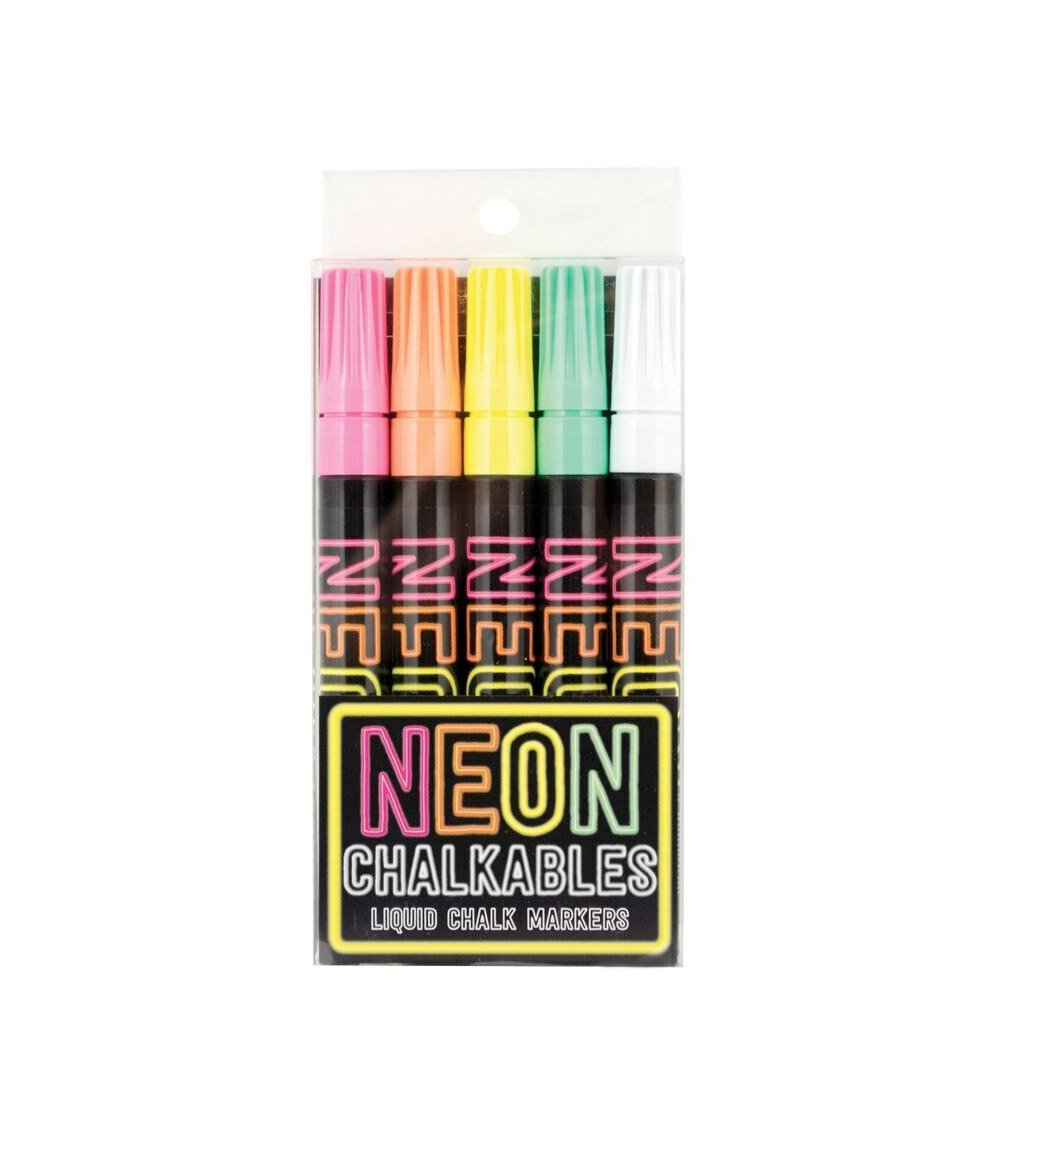 OOLY Neon Chalkables Liquid Chalk Markers, Set of 5 (130-030)